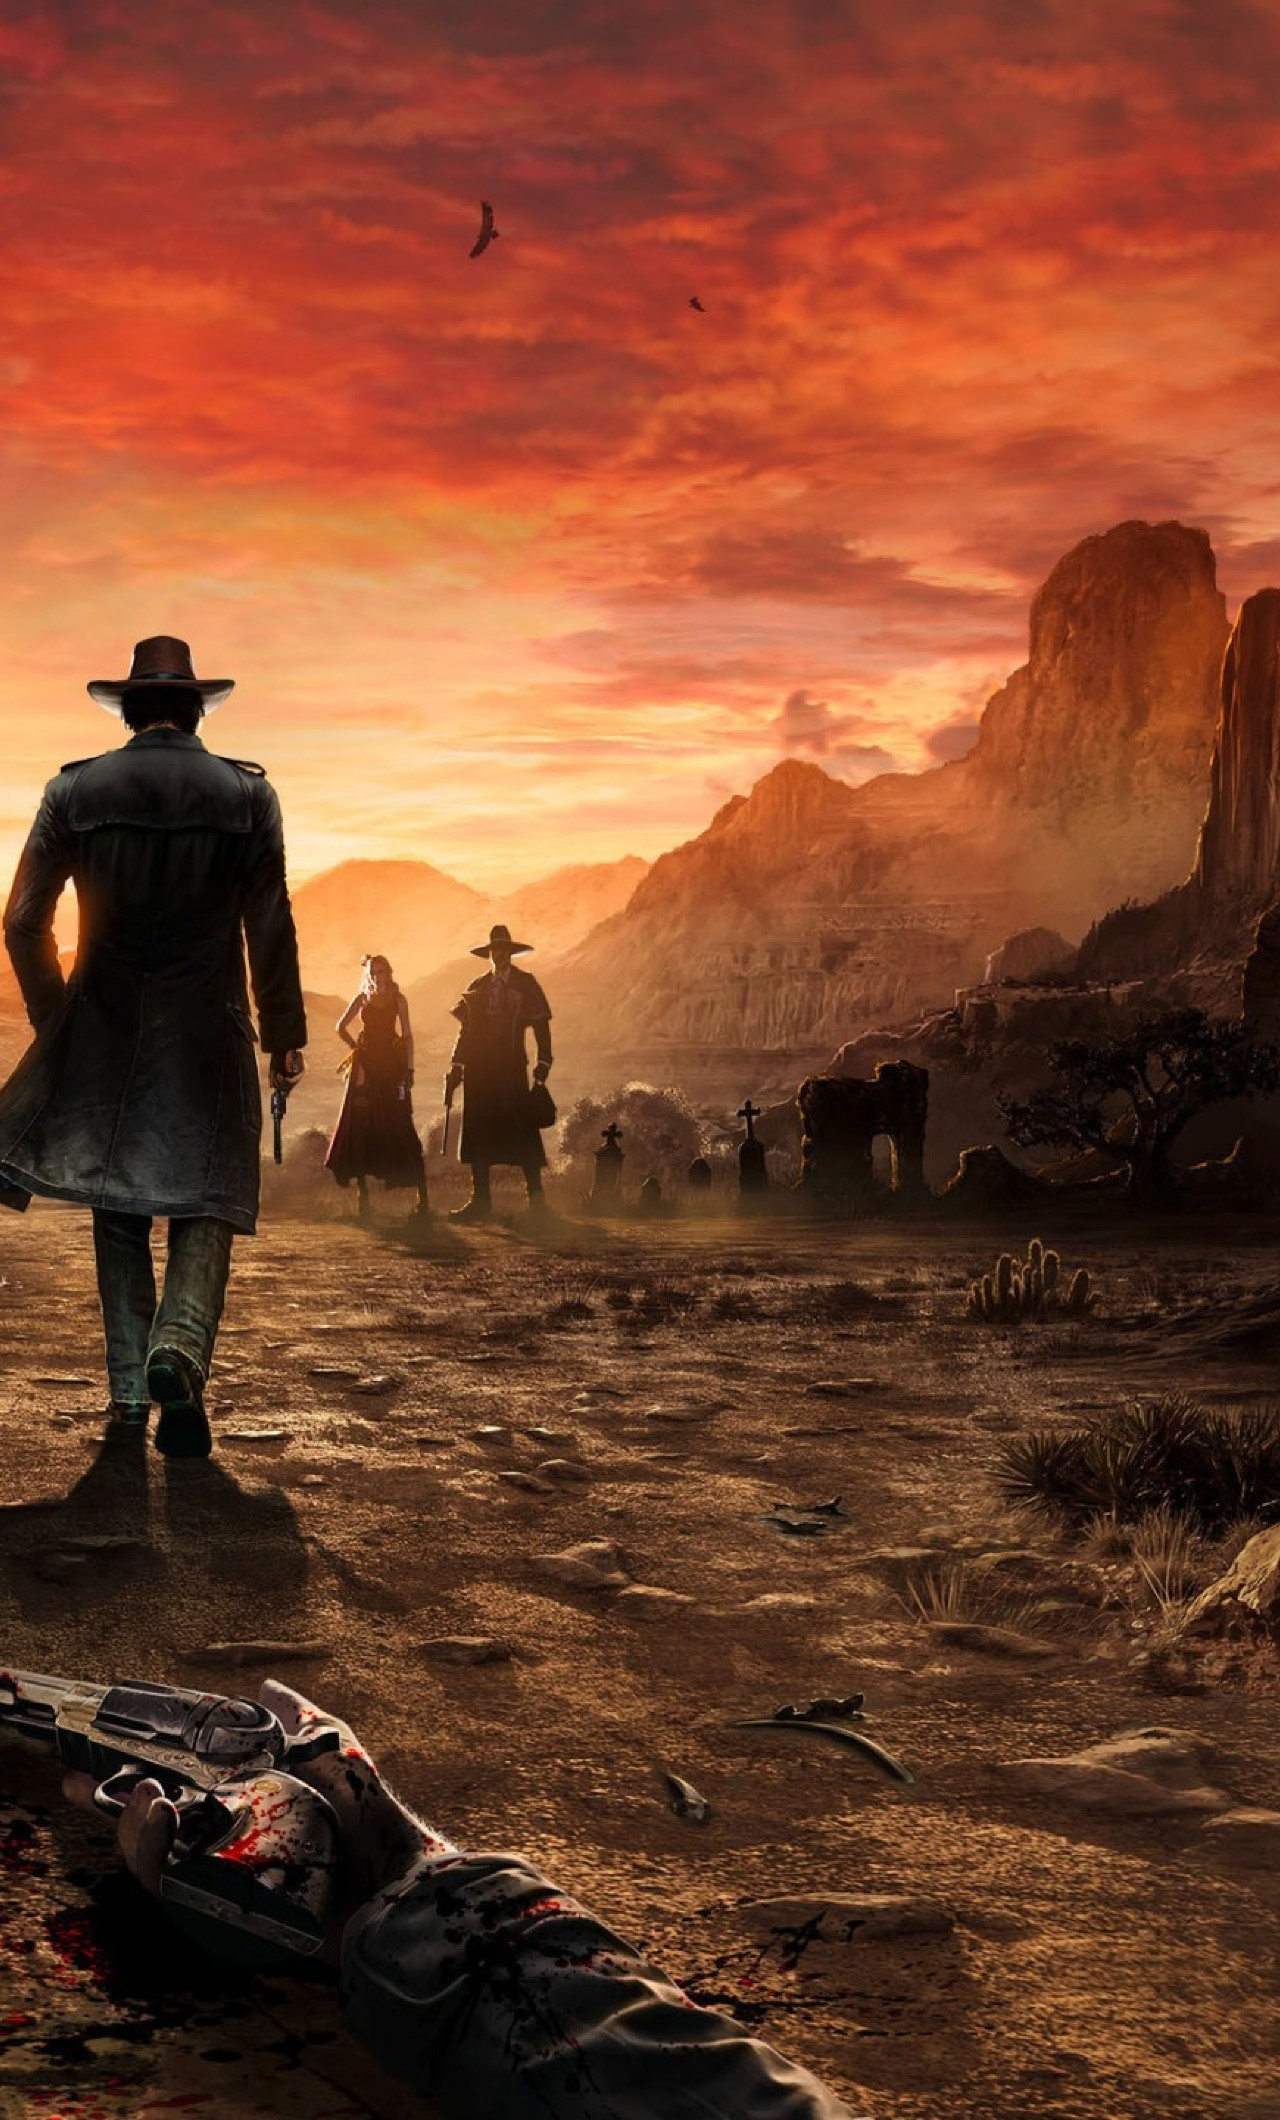 1280x2120 Desperados Iii Game 2018 Iphone 6 Plus Wallpaper Hd Games 4k Wallpapers Images Photos And Background